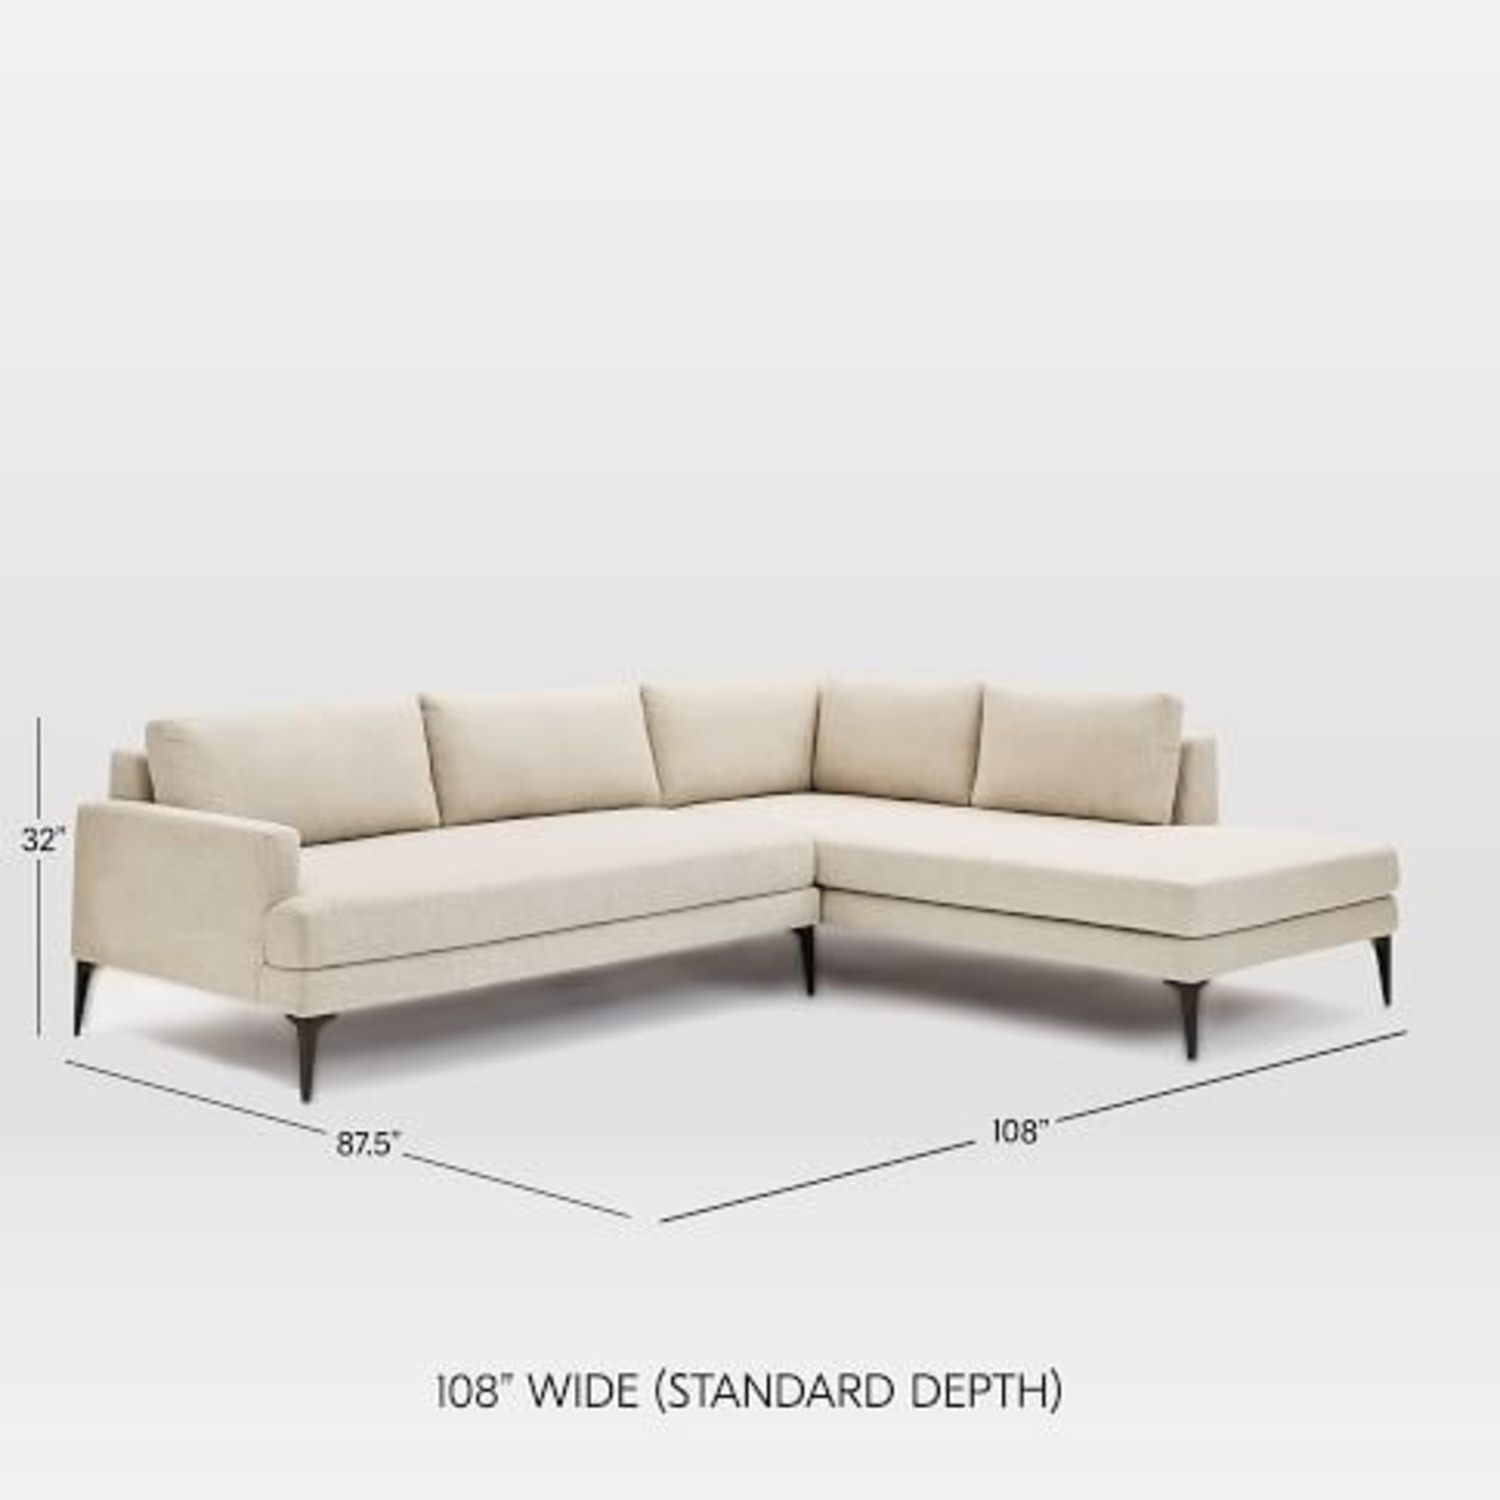 West Elm Grey Andes Right 2-Piece Chaise Sectional - image-3